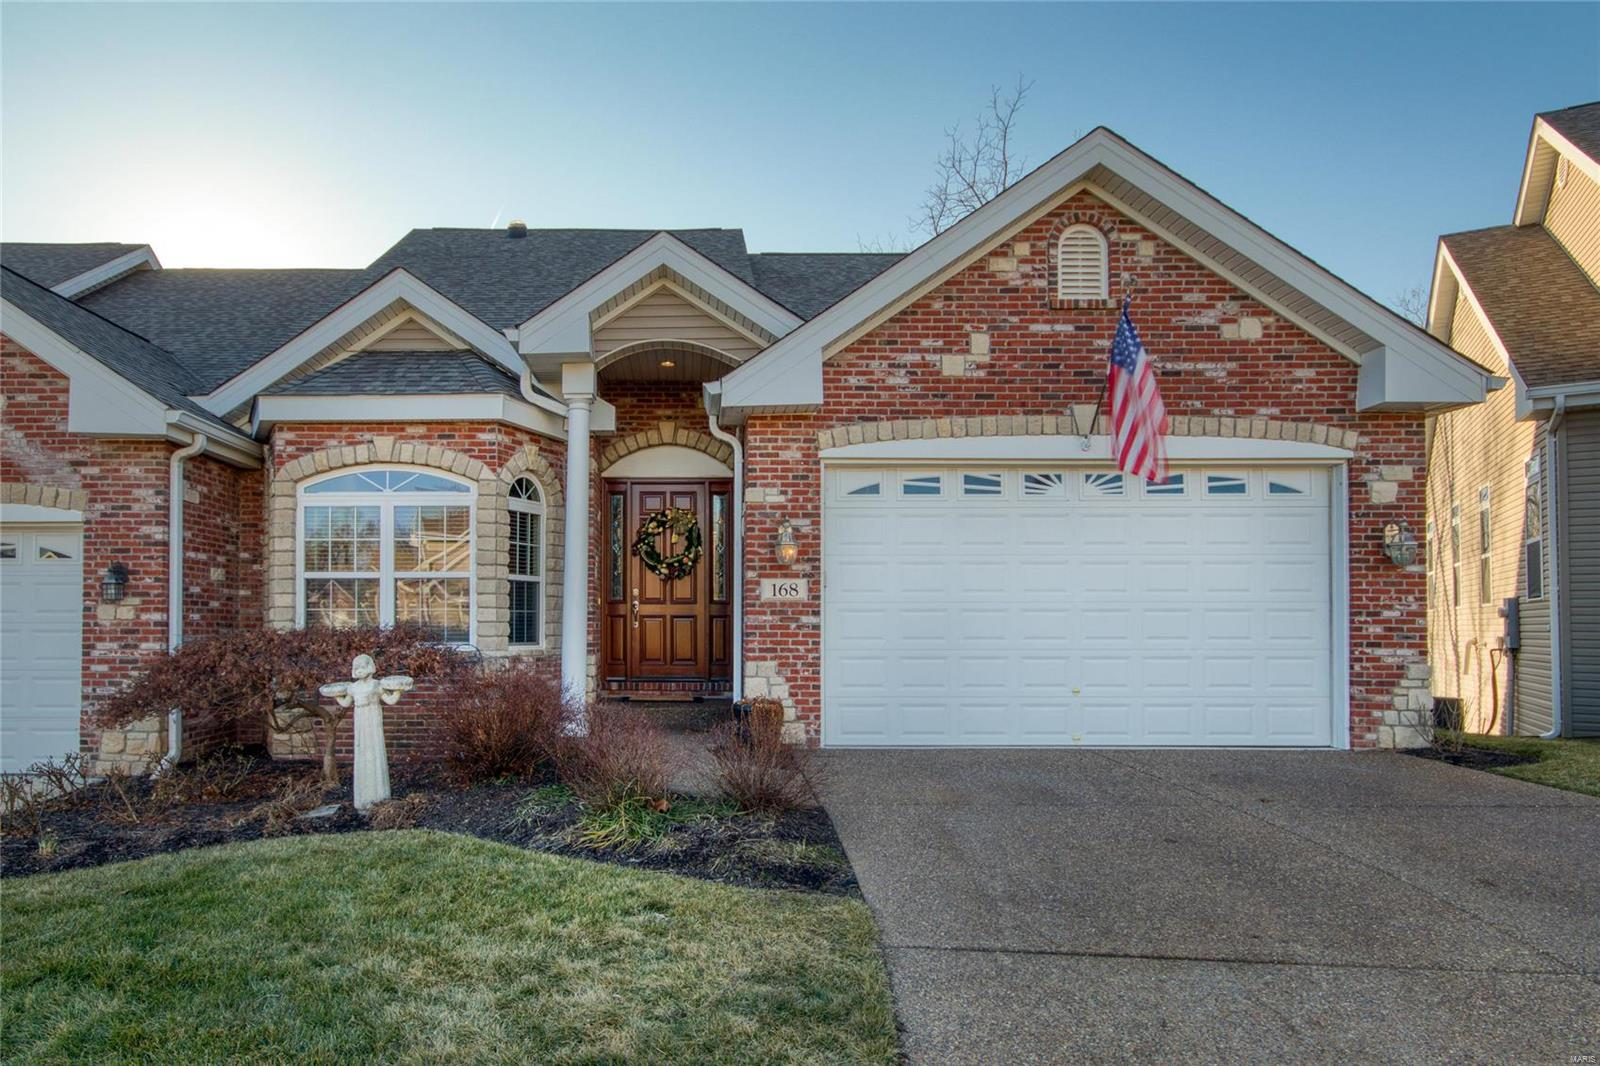 168 Woodland Place Property Photo - St Charles, MO real estate listing